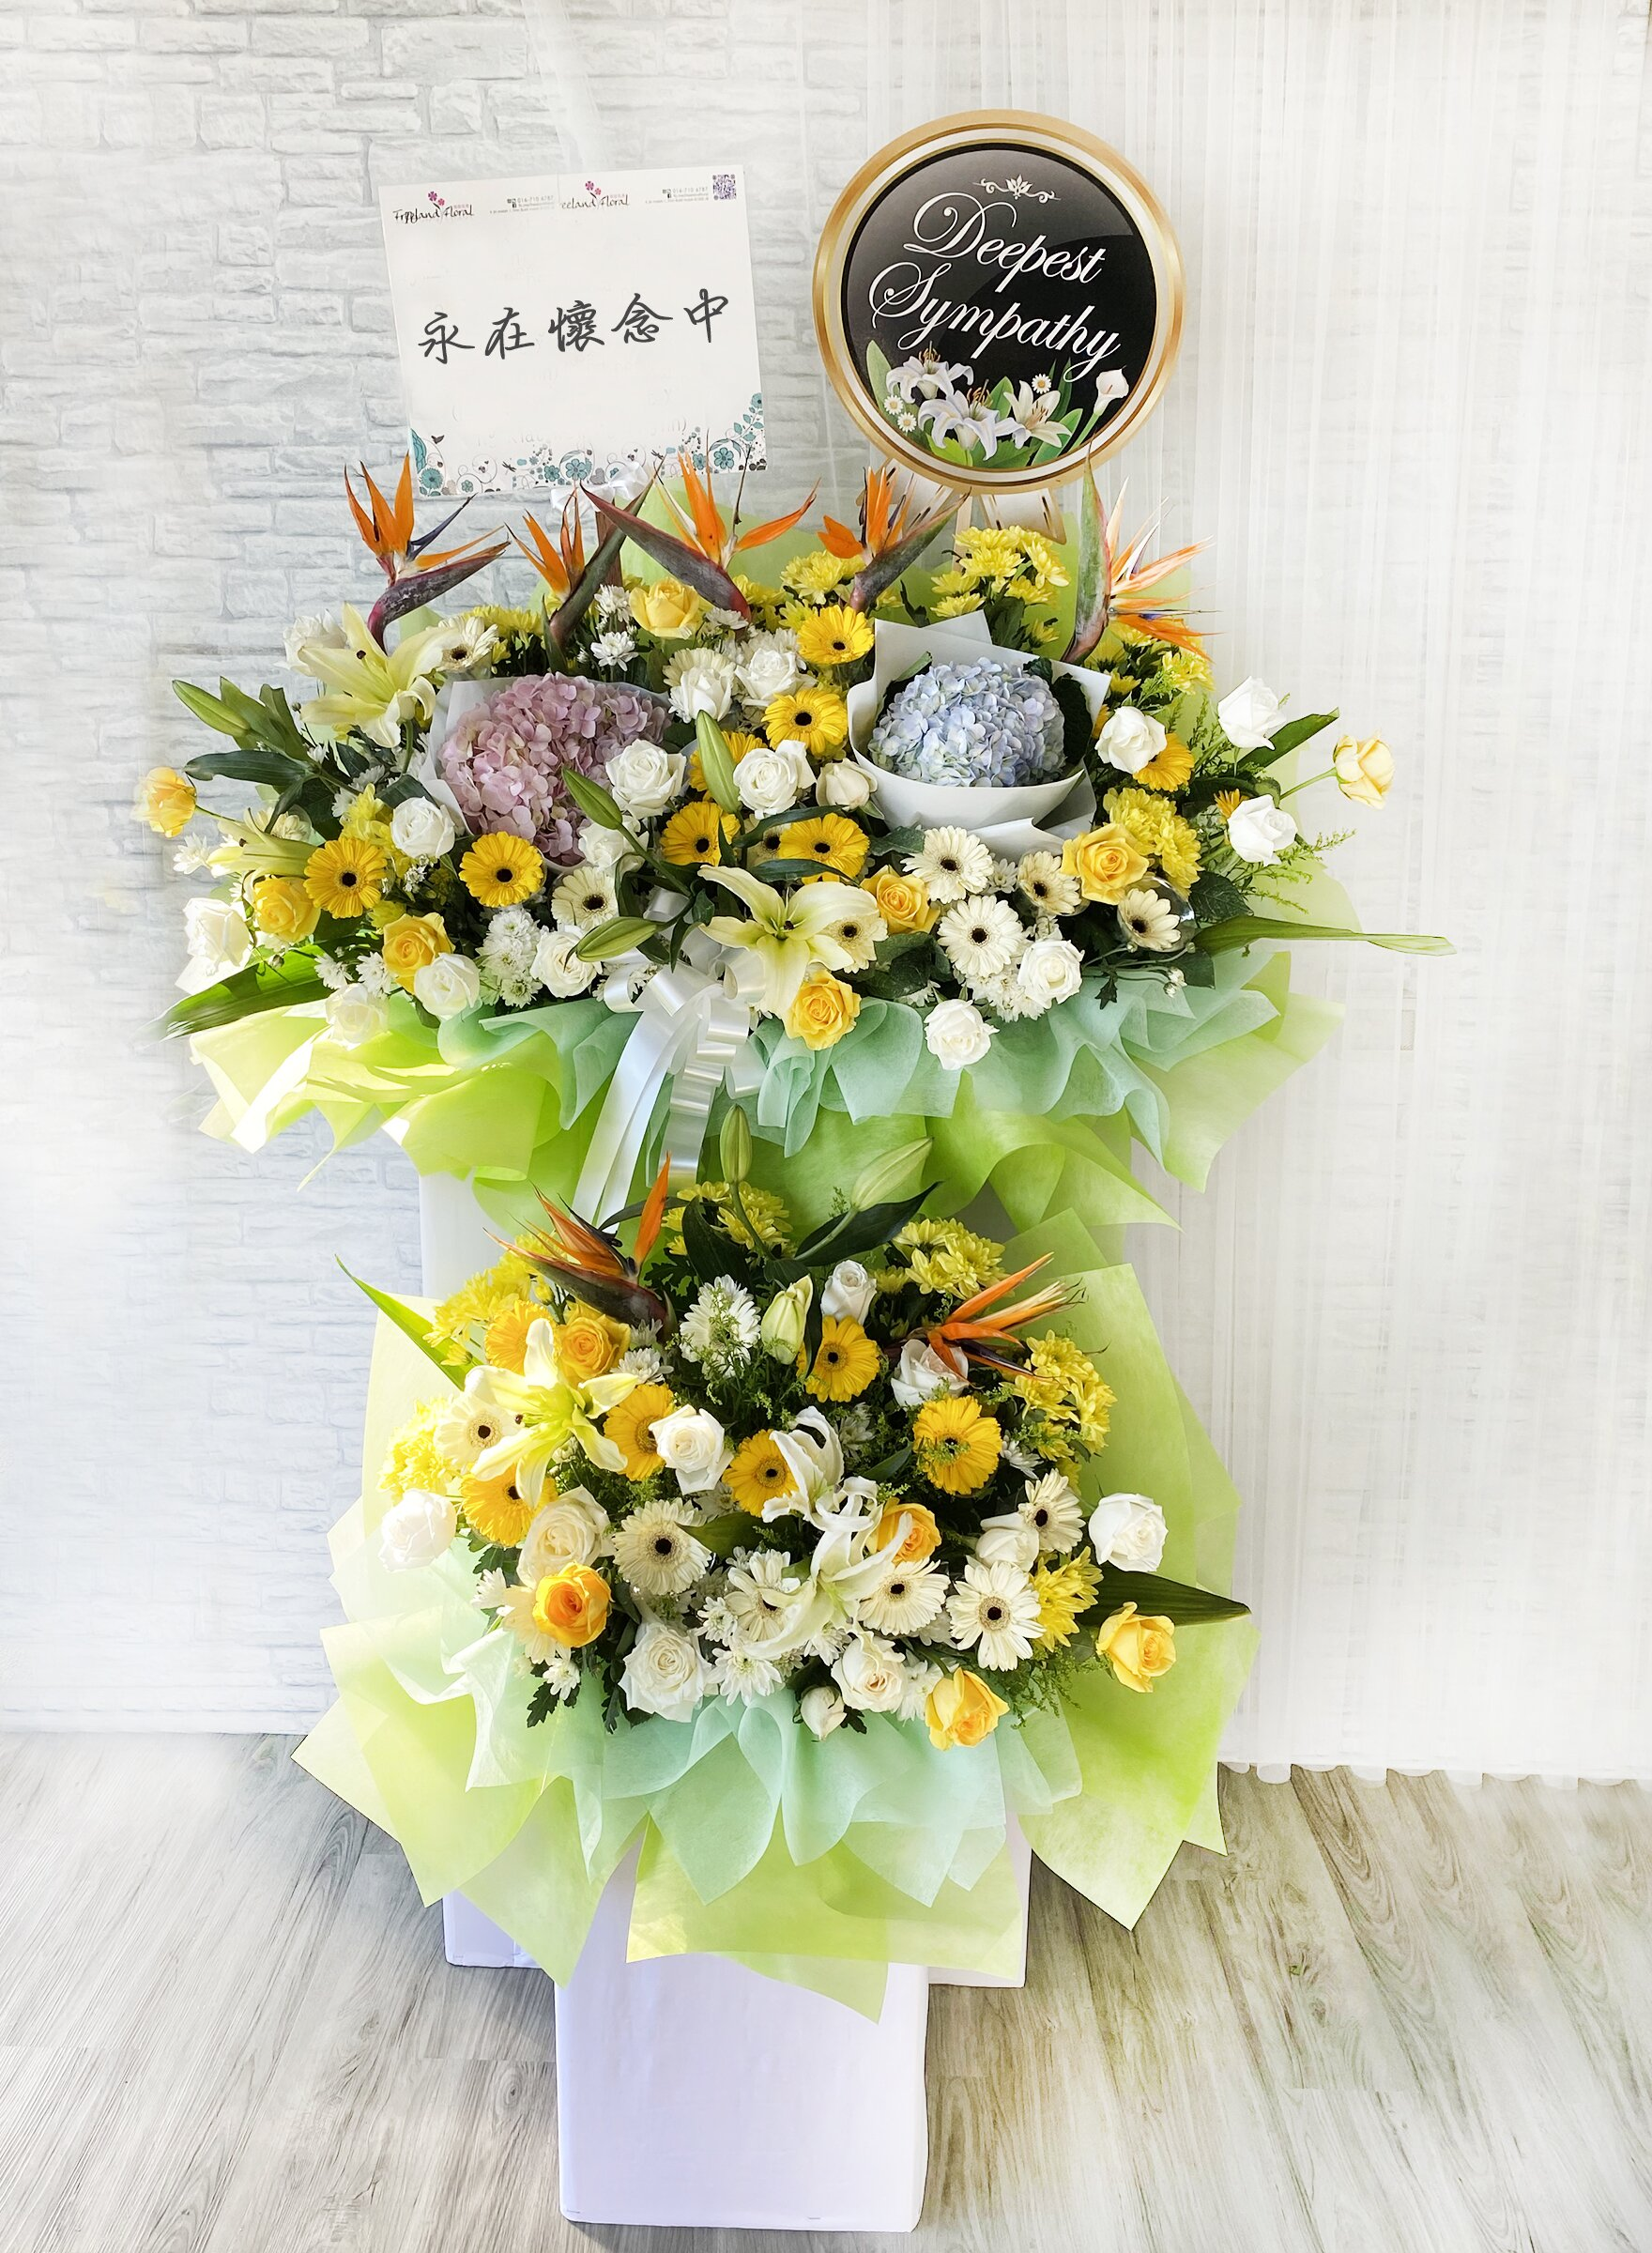 Living In Our Memories - Freeland Floral 自由花苑